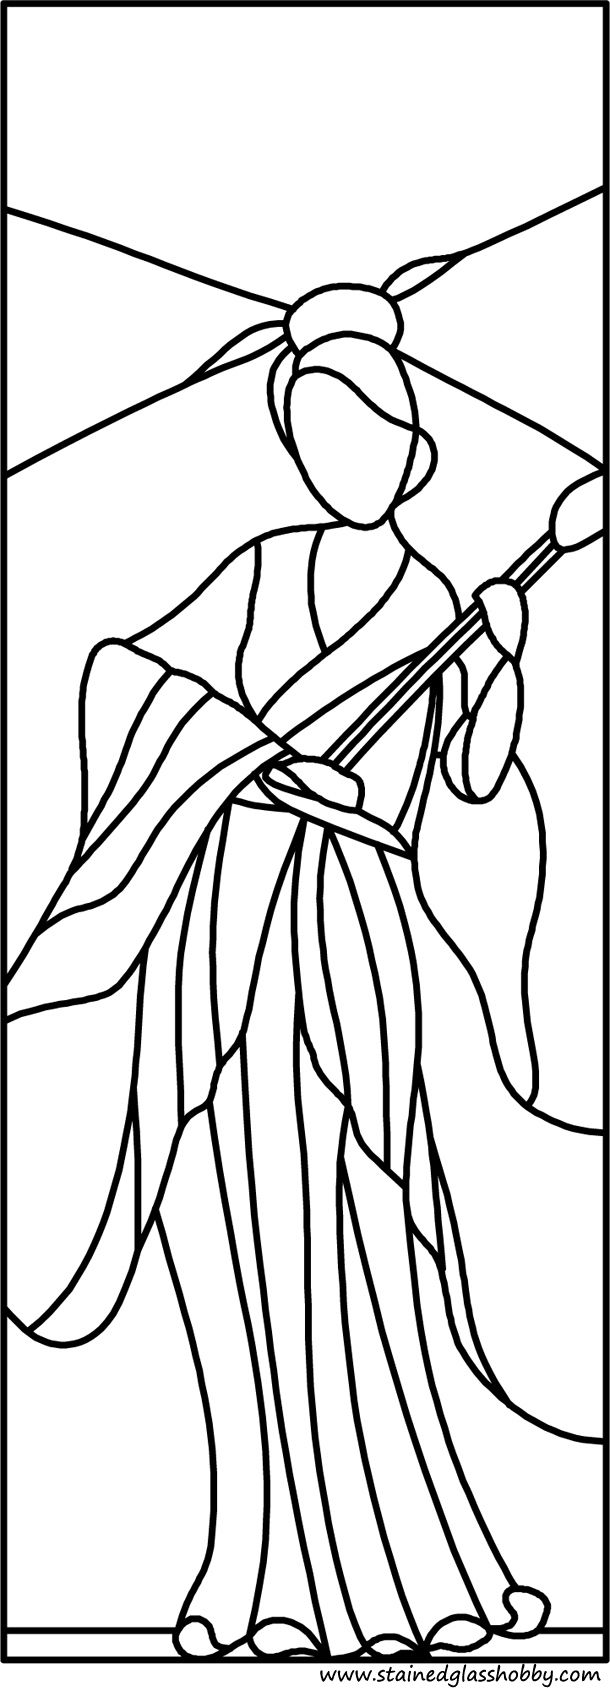 chinese woman stained glass pattern cute coloring book